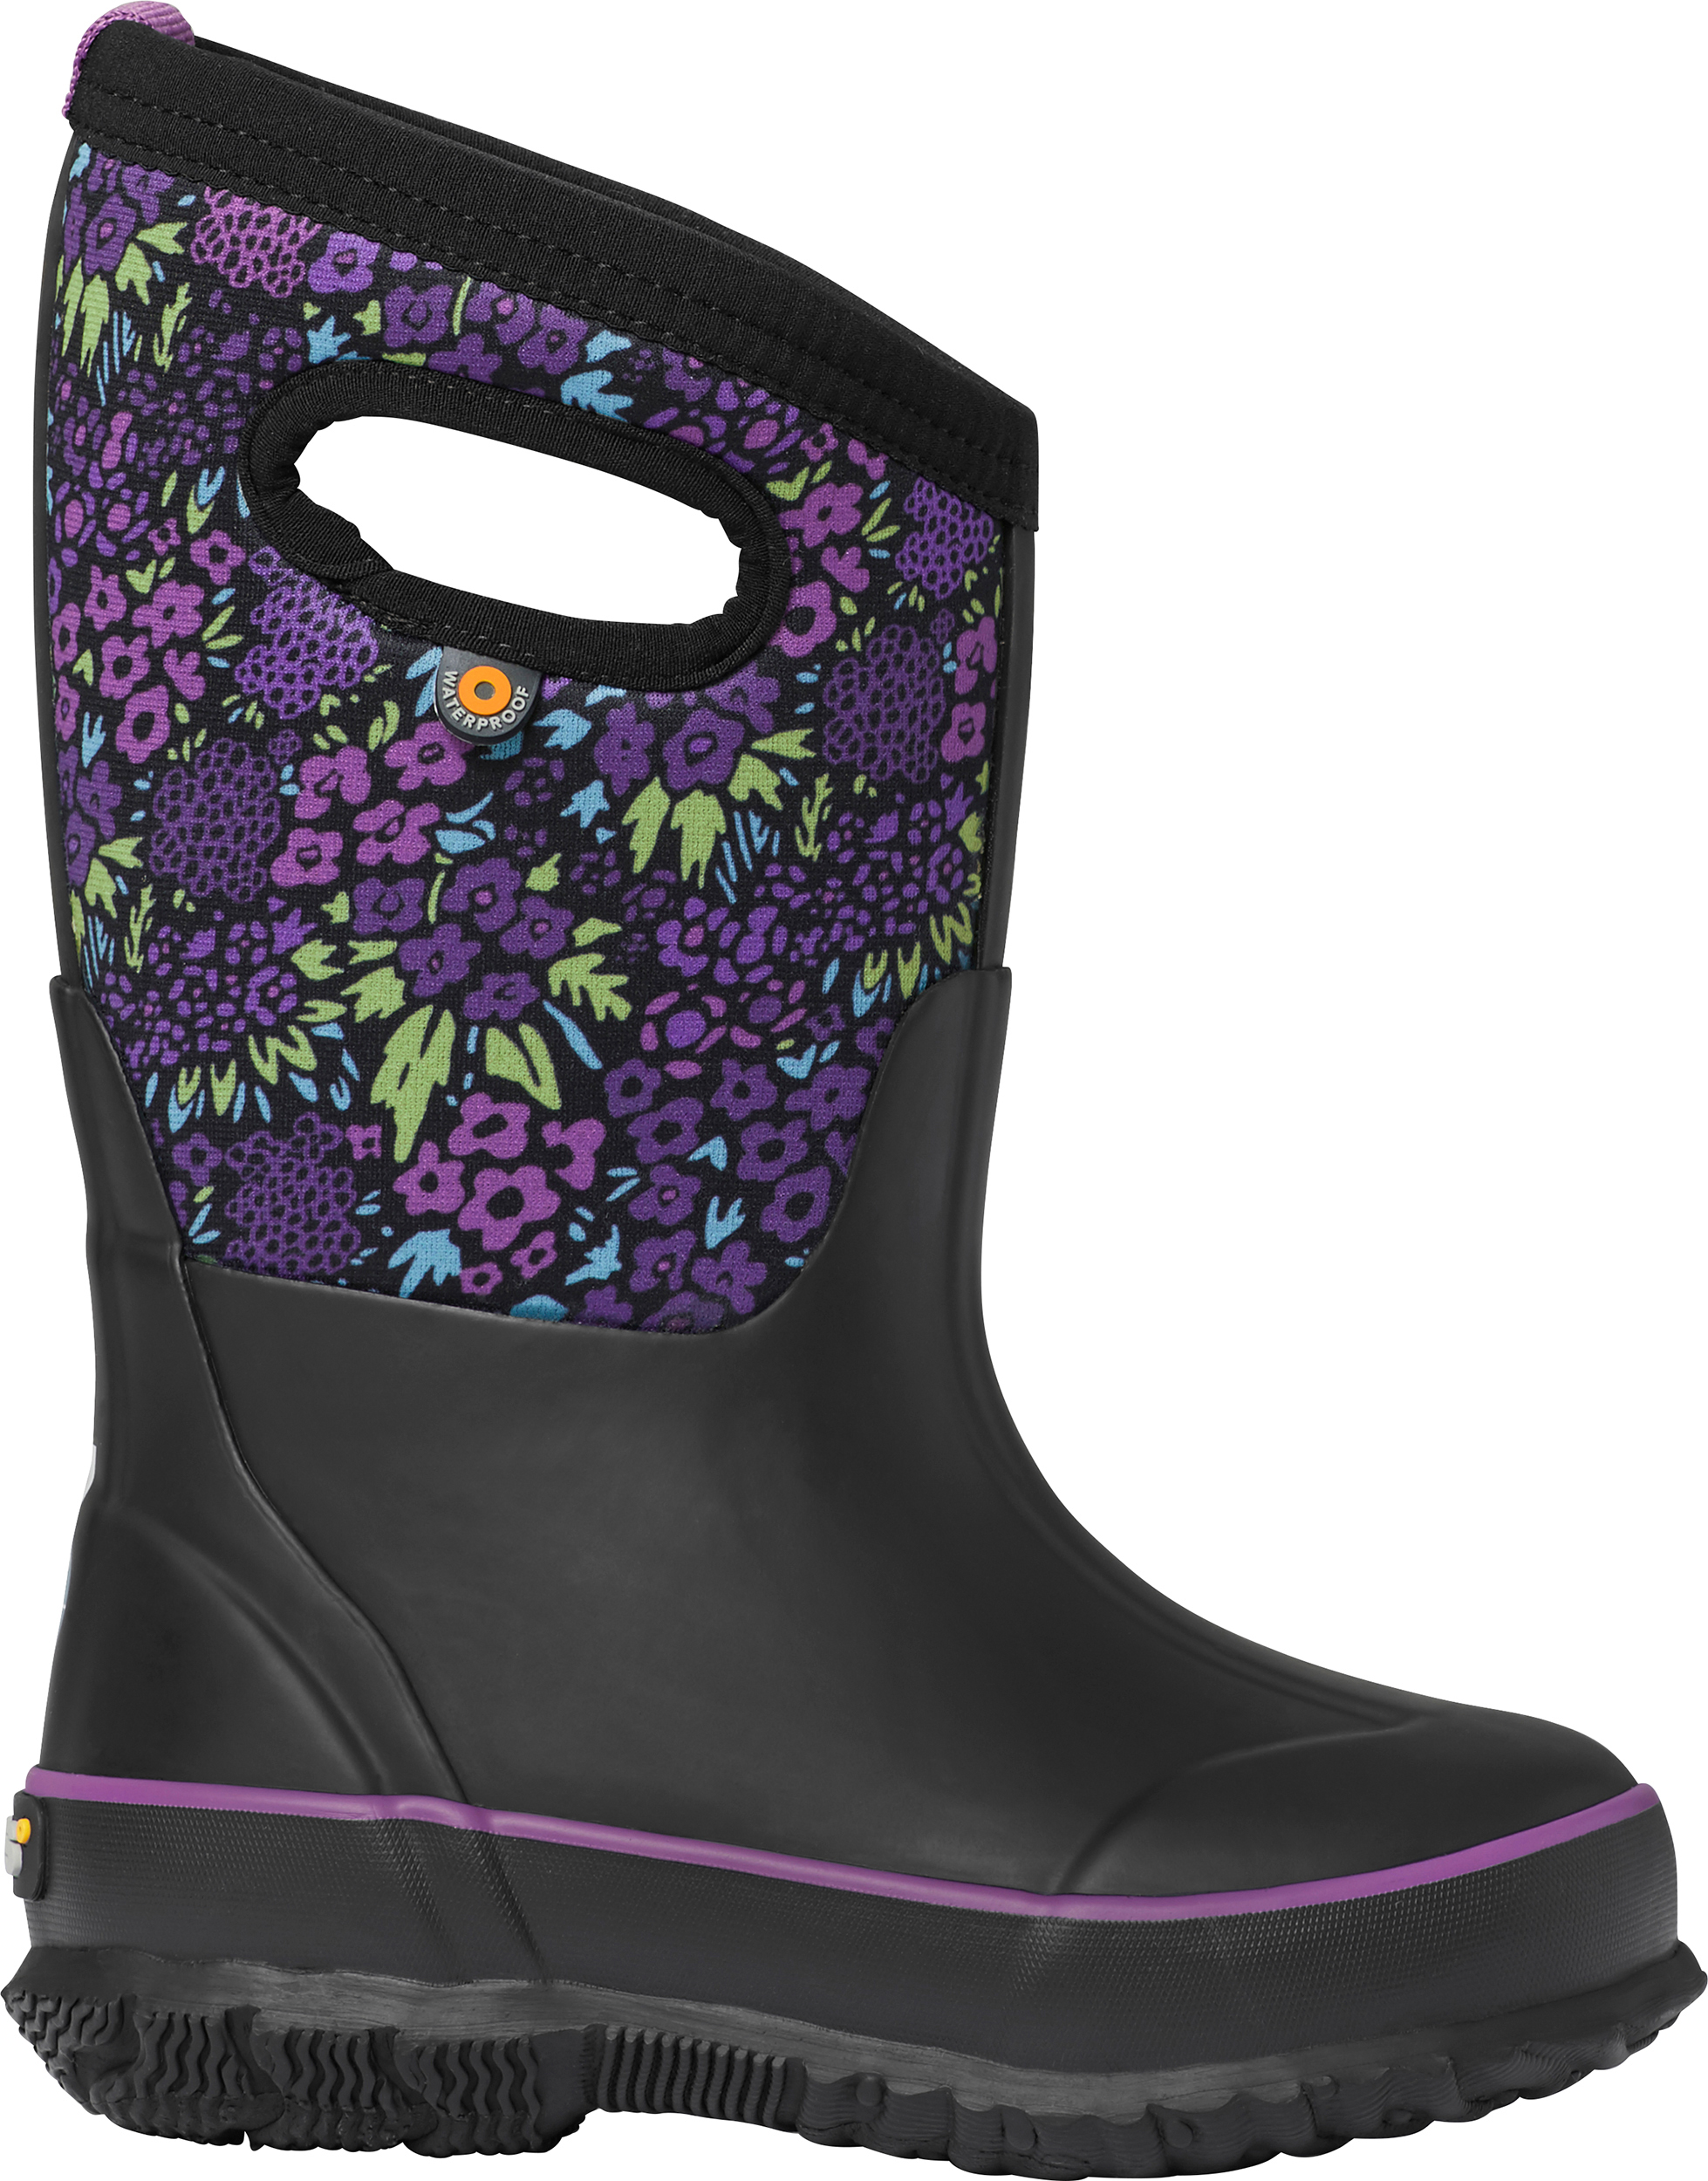 09672f0cc91 Bogs Classic Waterproof Insulated Boots - Children to Youths | MEC